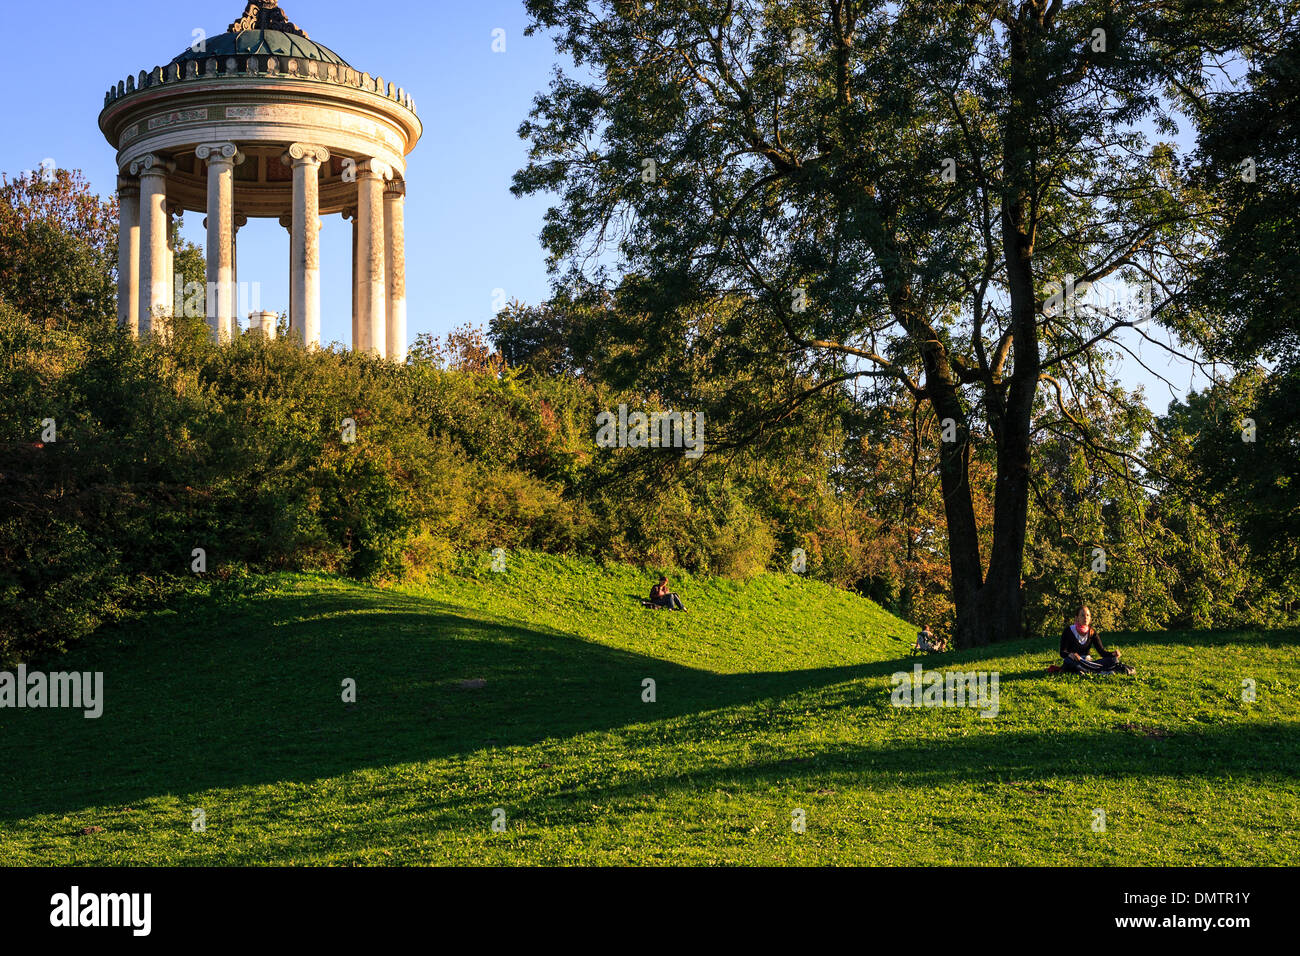 The Monopteros in Englischer Garten of Munich - Stock Image